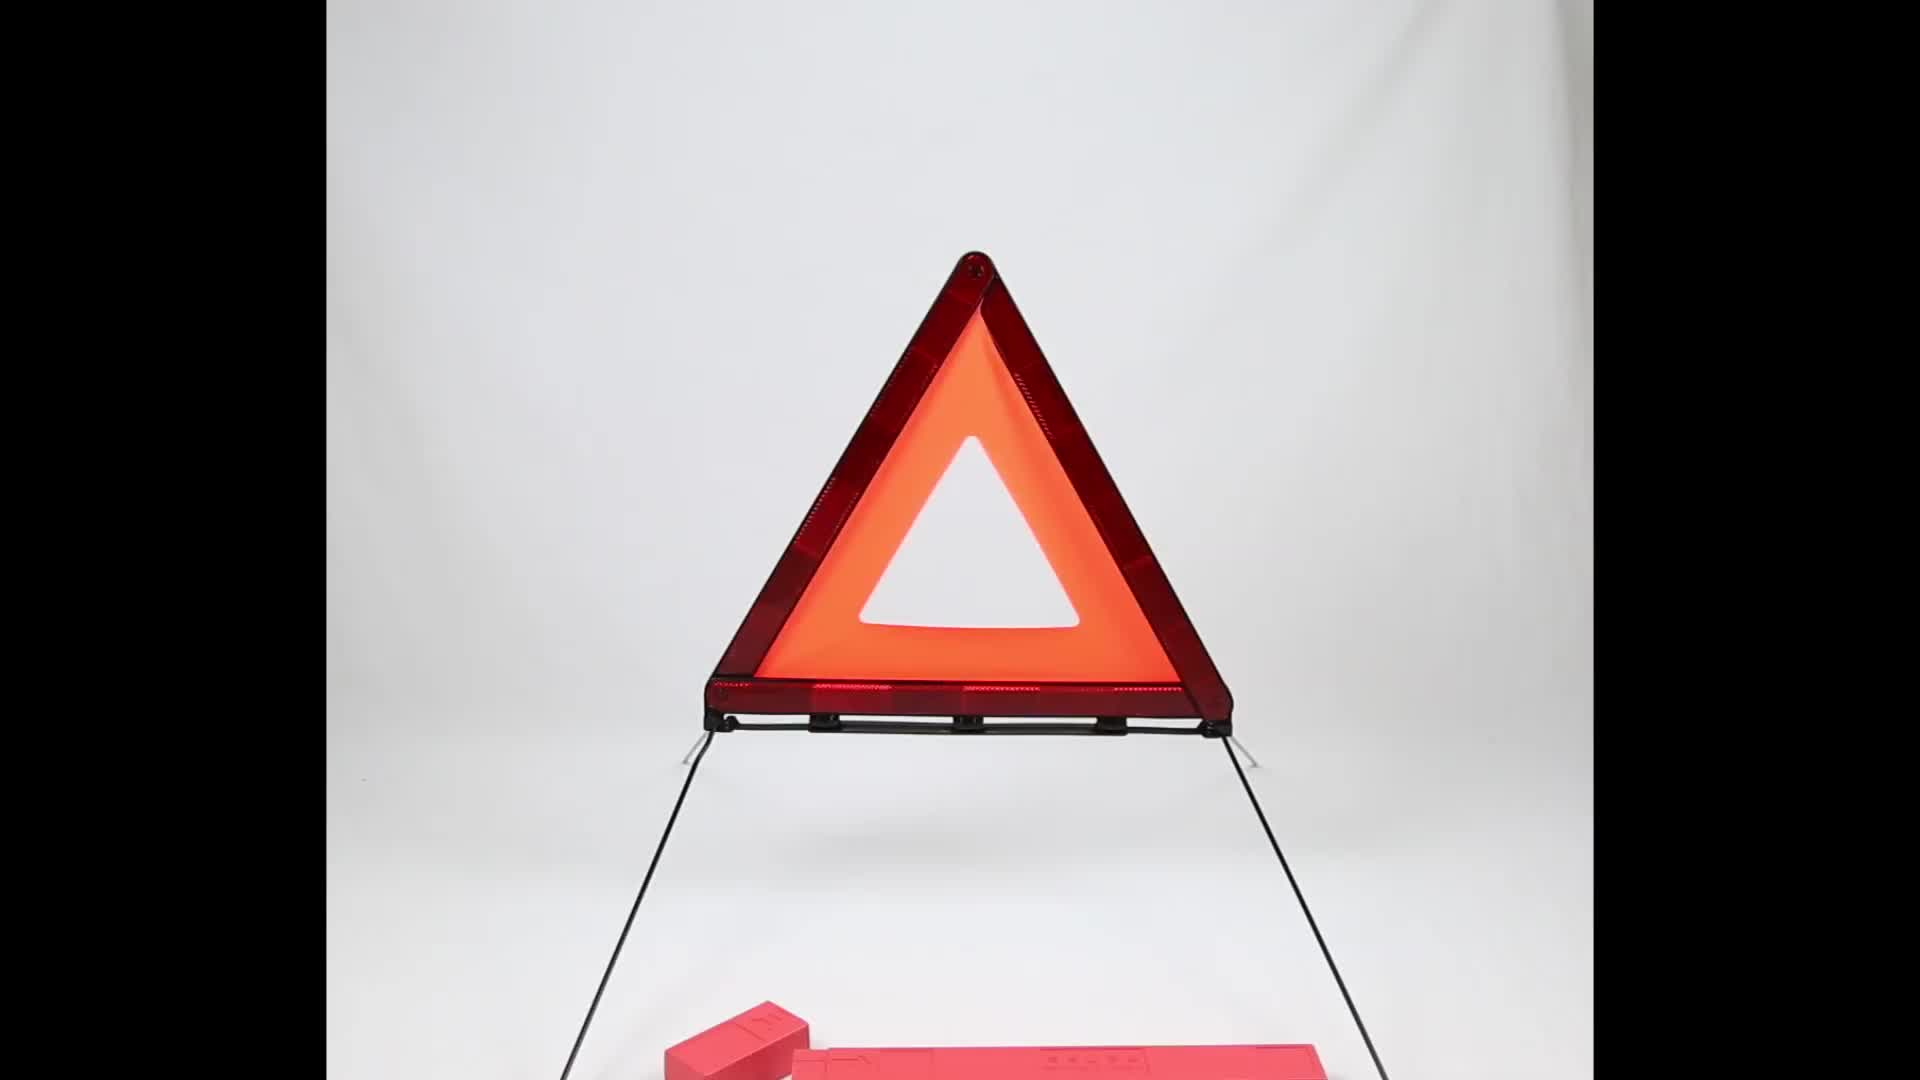 Emark Dot Road Safety Pmma Abs Material Reflecting Reflective Hazard Warning Triangle Reflector For Car